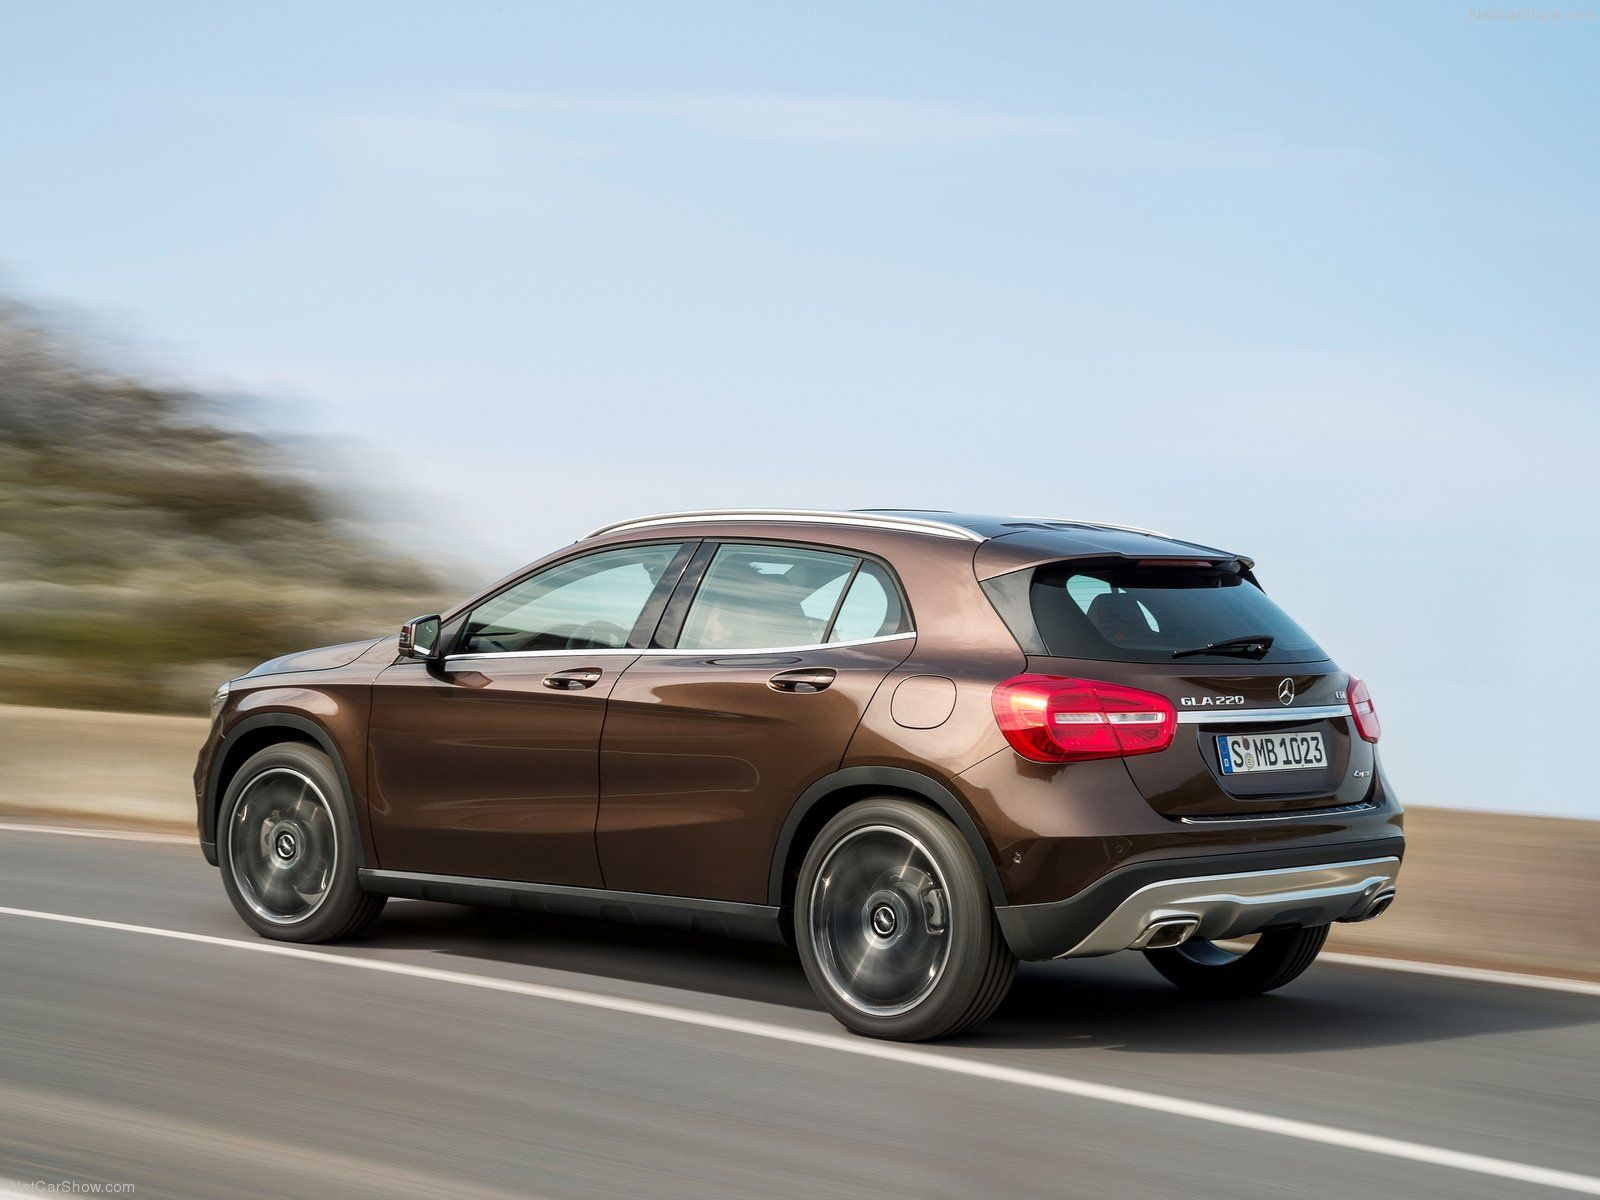 The Best Small Luxury Cars in 2015